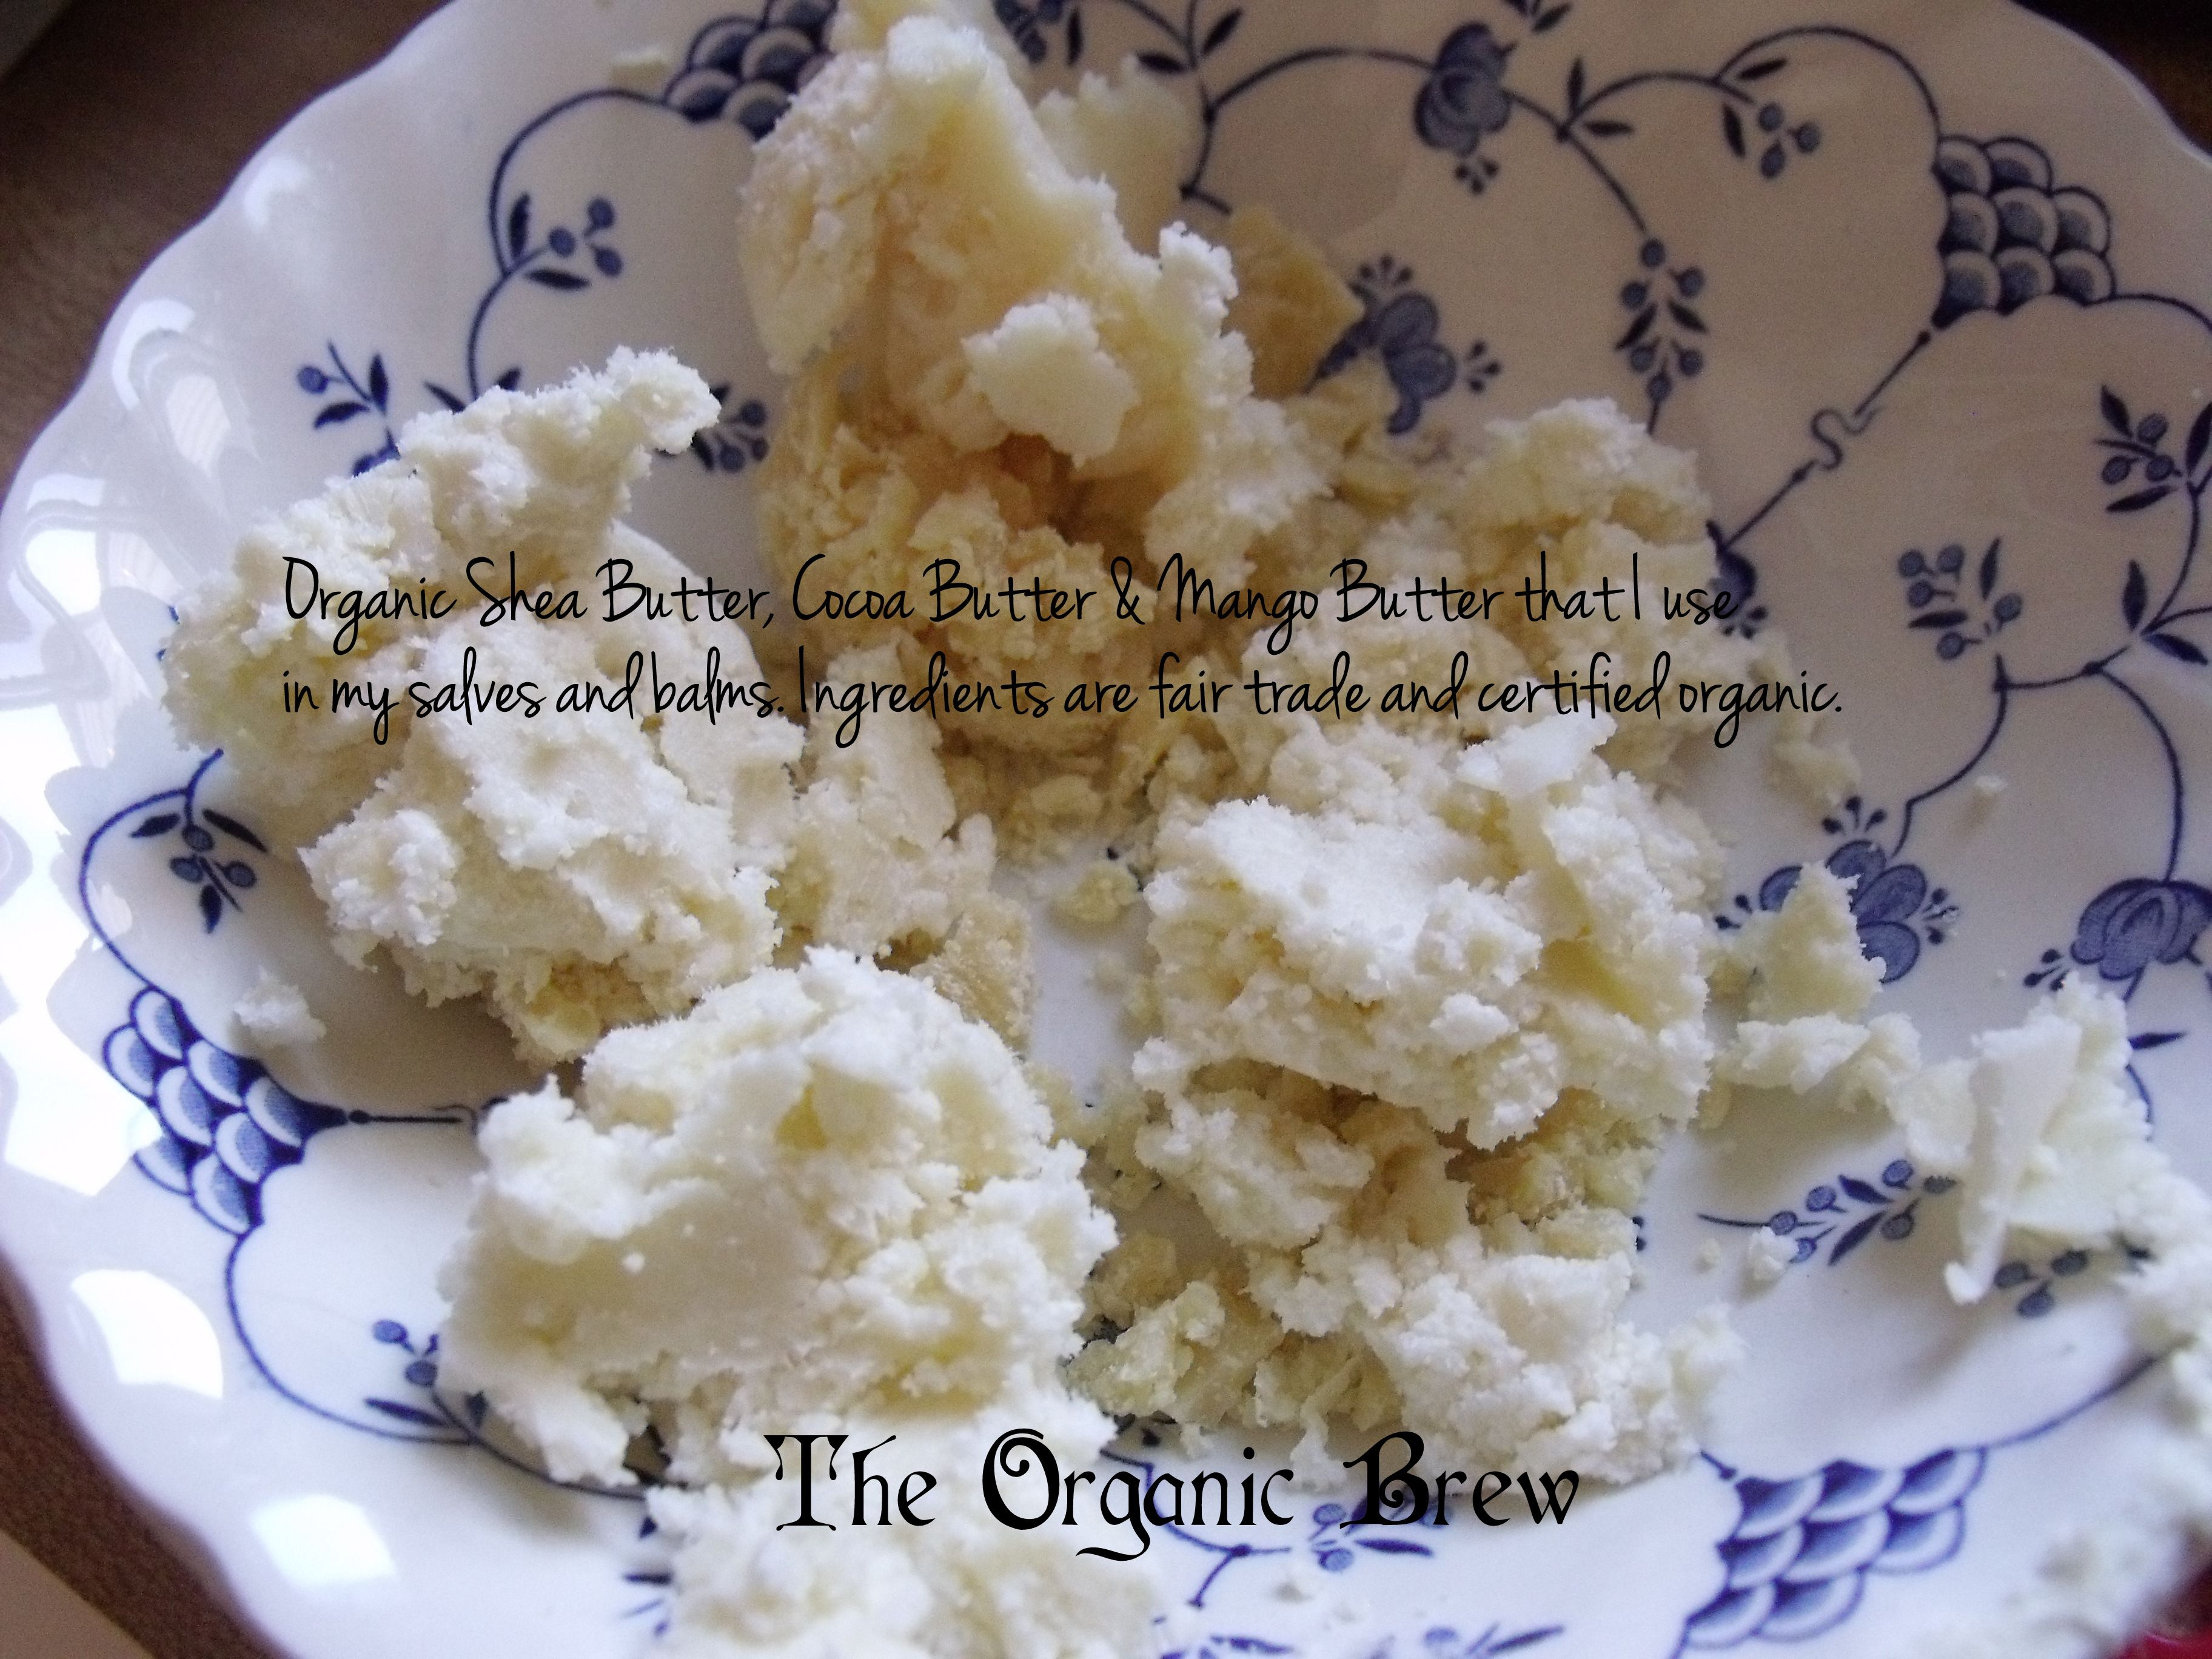 The organic base for all of The Organic Brew's salves and